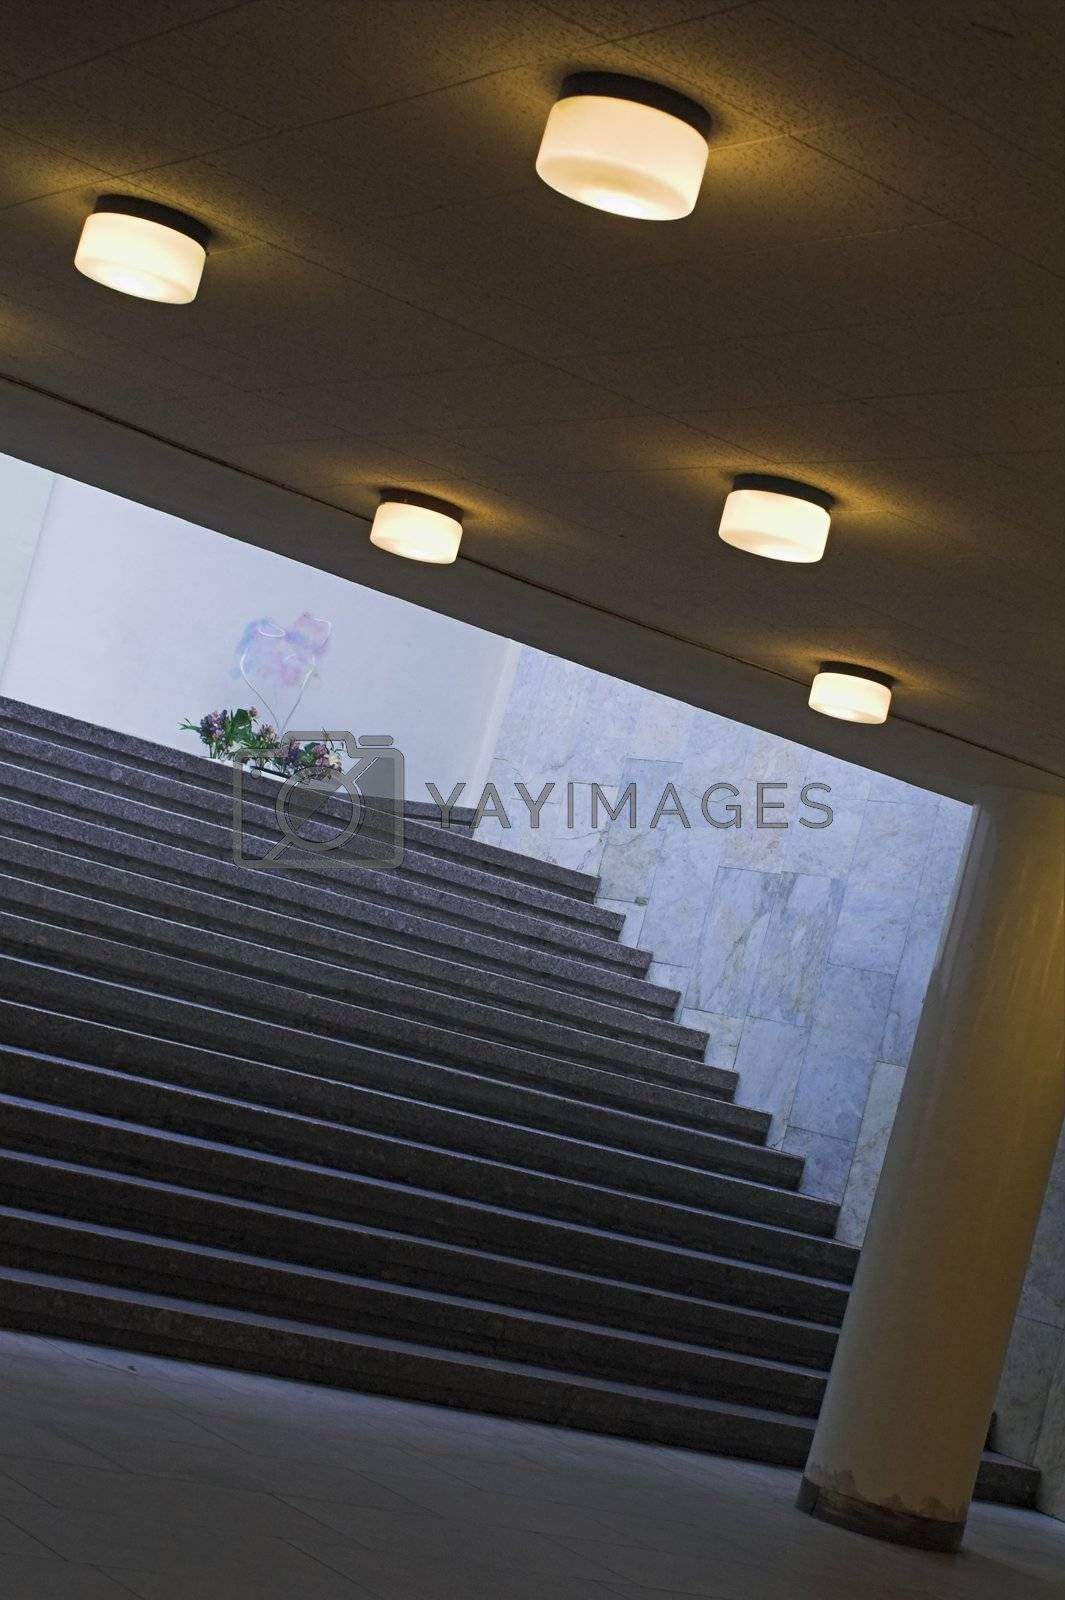 A staircase to a building's ground floor with lights on, a column, and a flower-bed in the natural light backgorund.